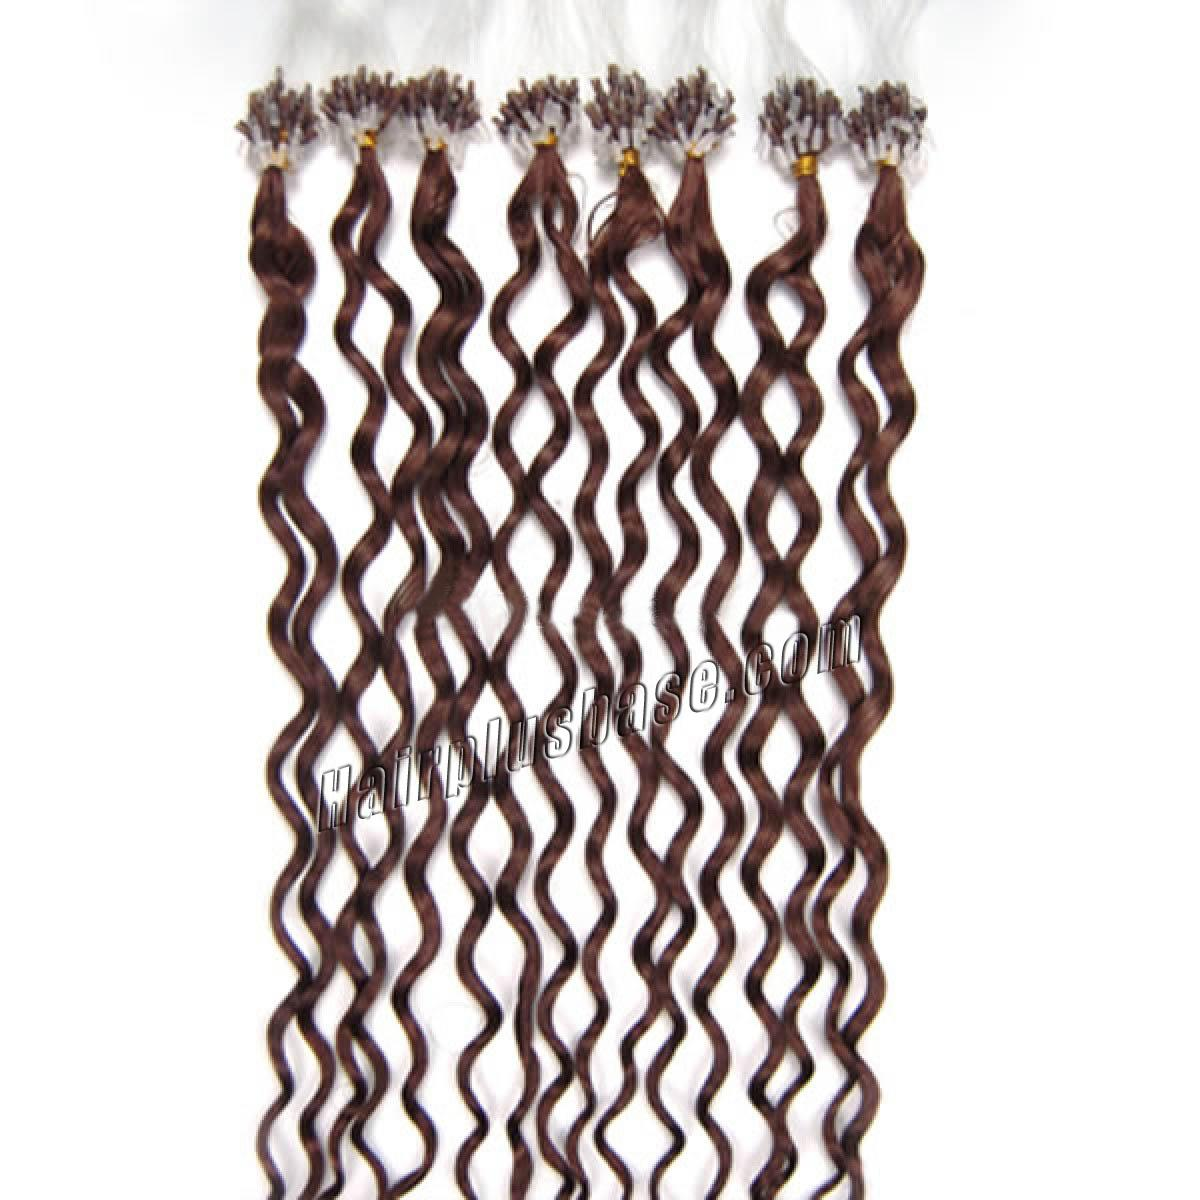 outstanding 34 inch  33 rich copper red curly micro loop hair extensions 100 strands 21691 0v